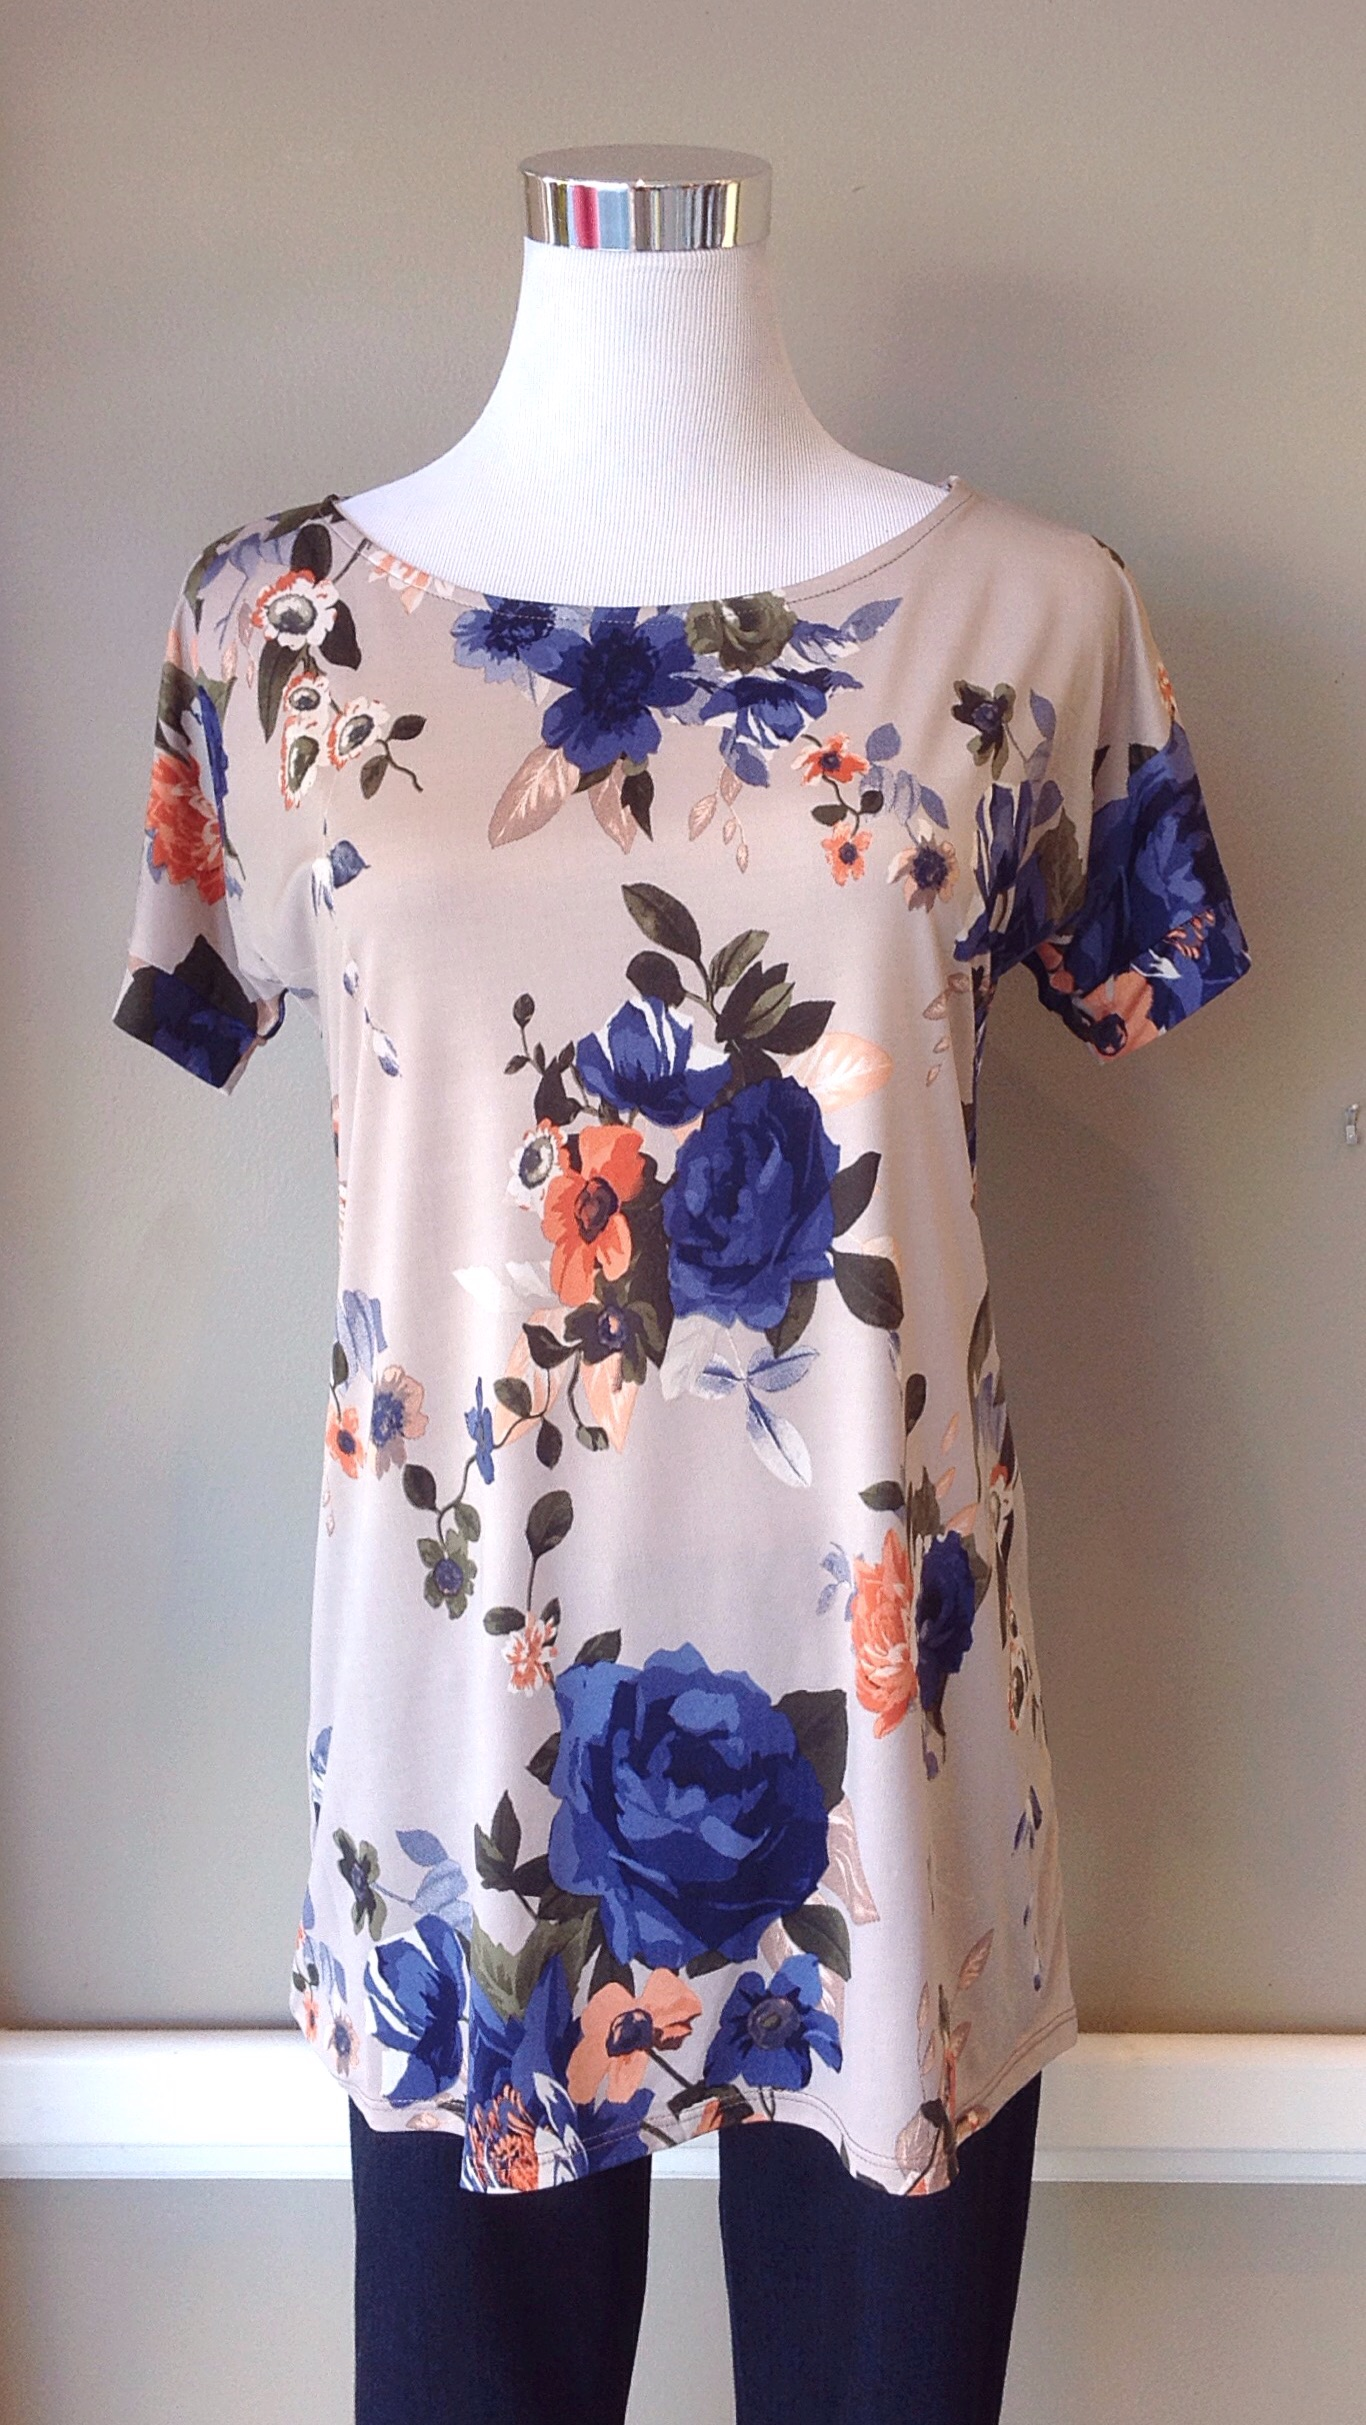 Sleek floral knit tee in taupe/multi, $32